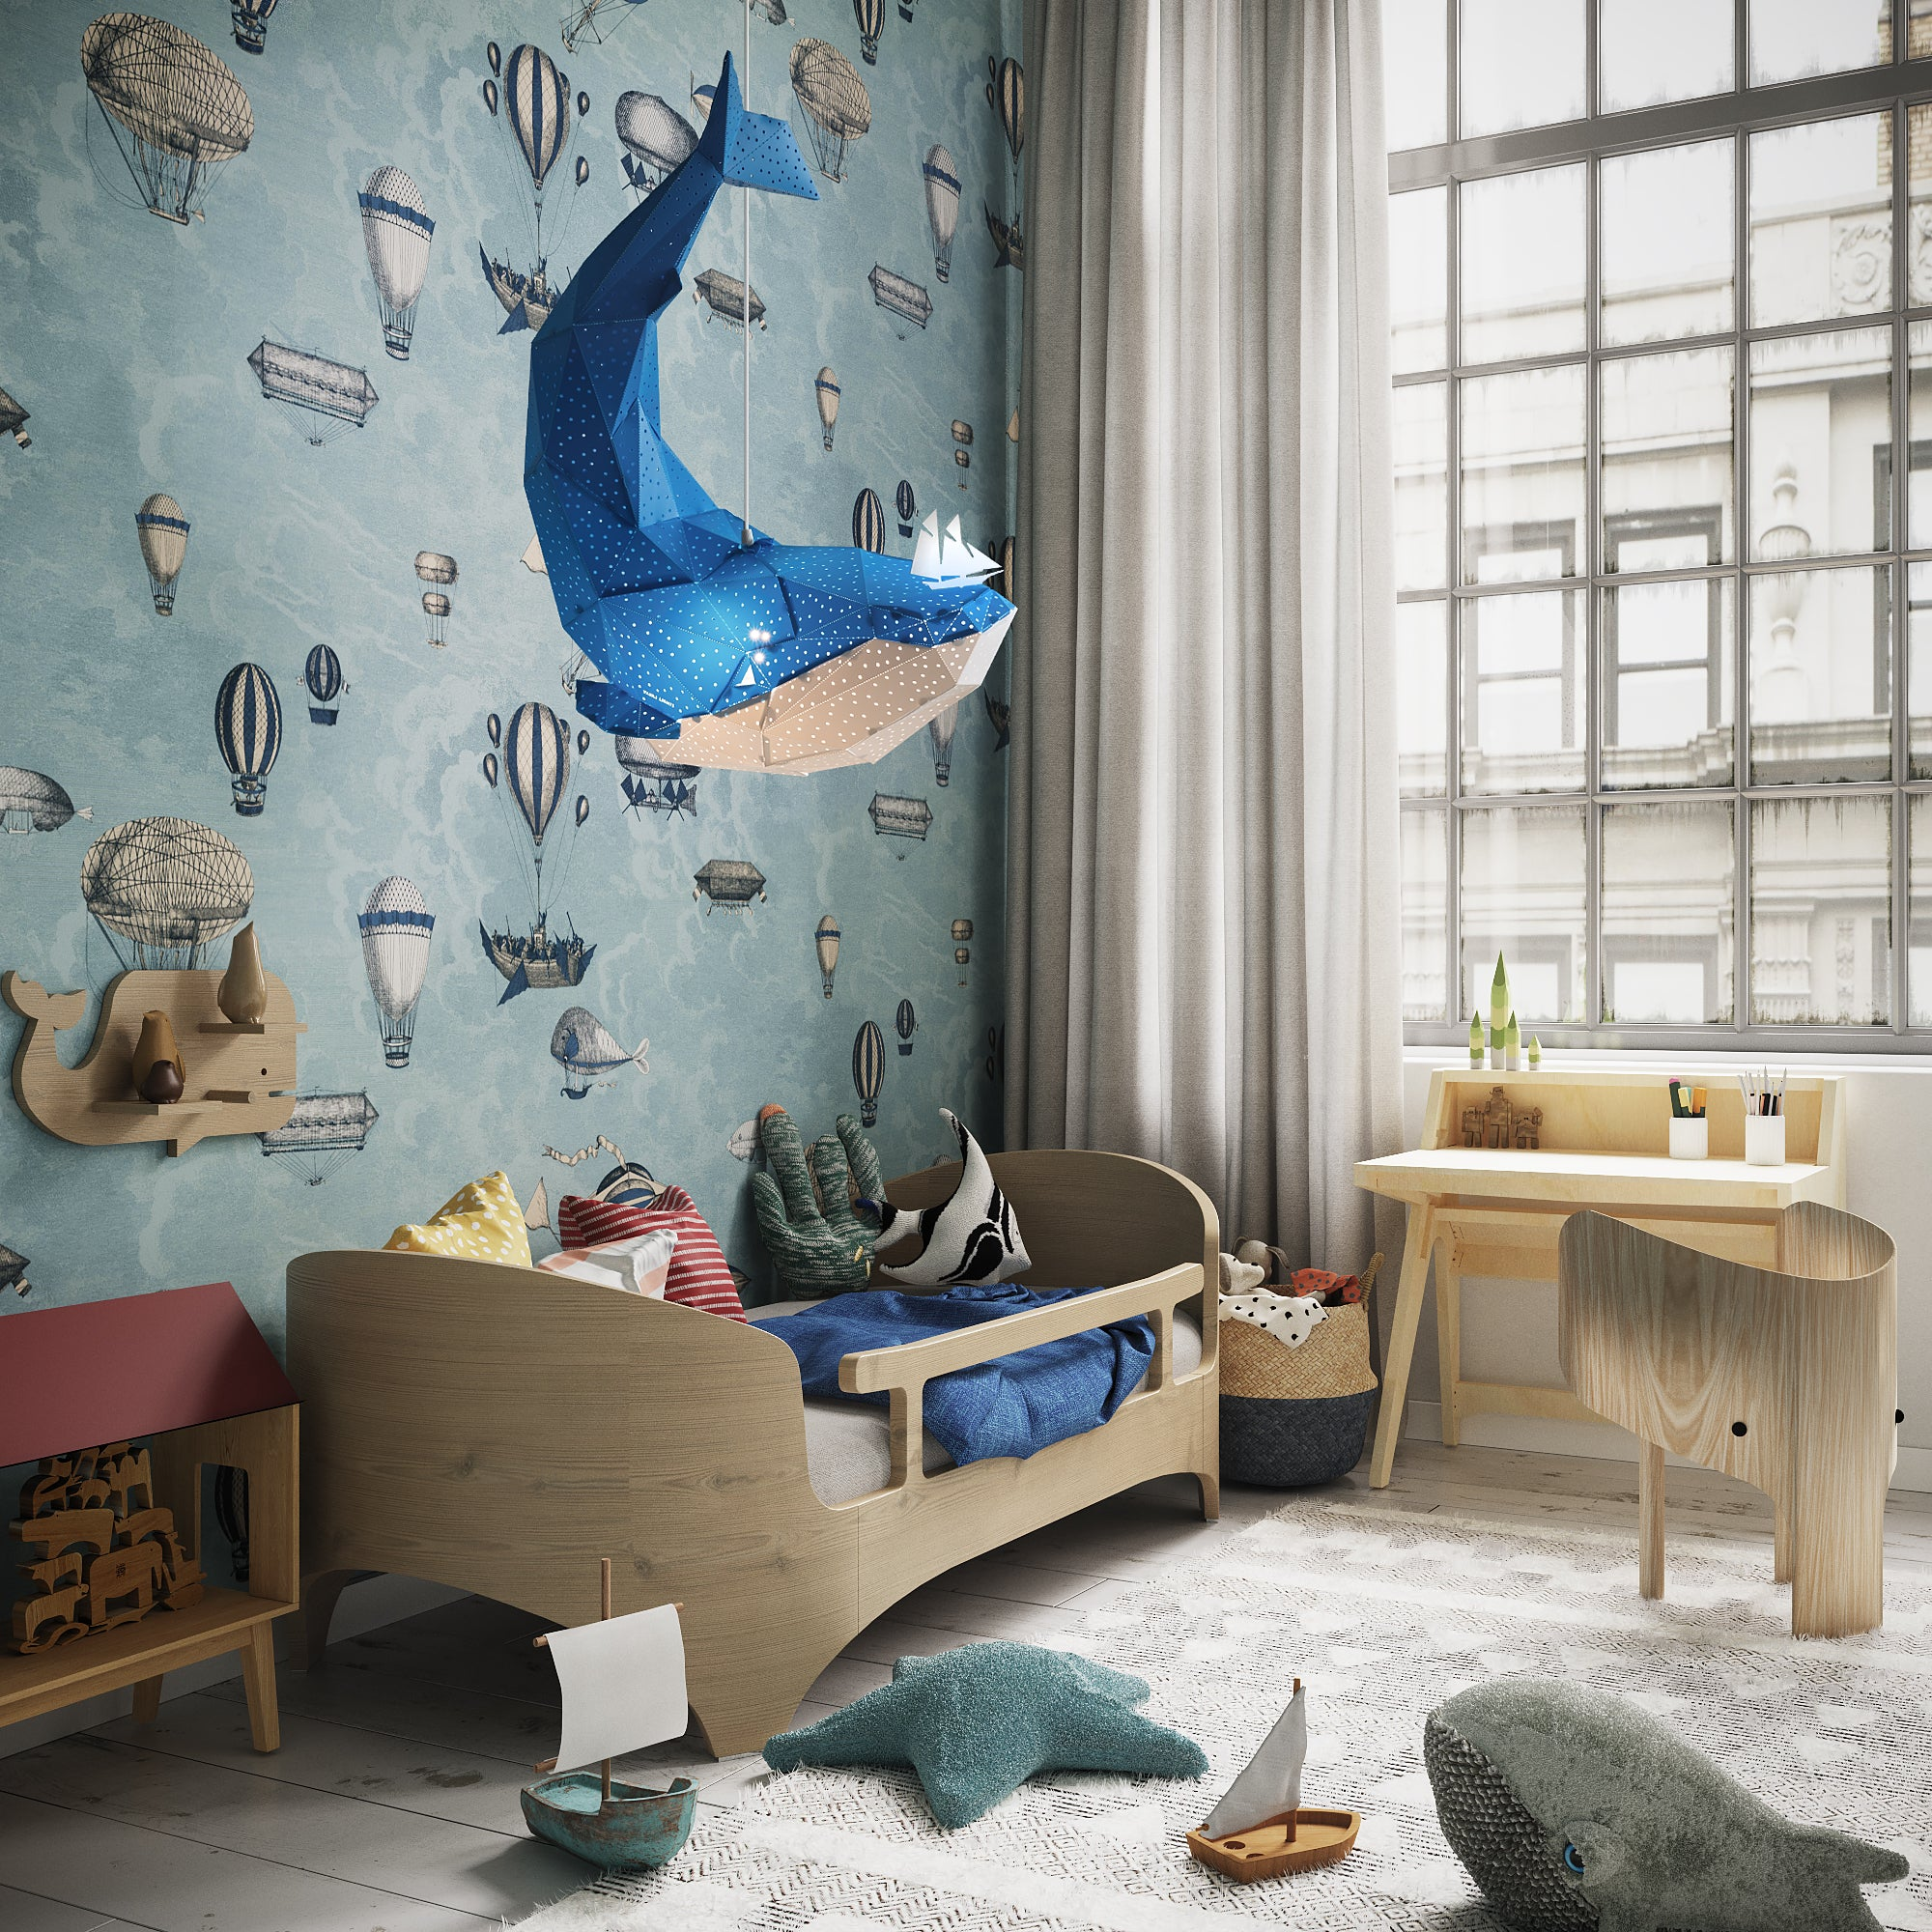 Blue pendant lamp in the form of a whale that hangs in the sea-themed kids'room.